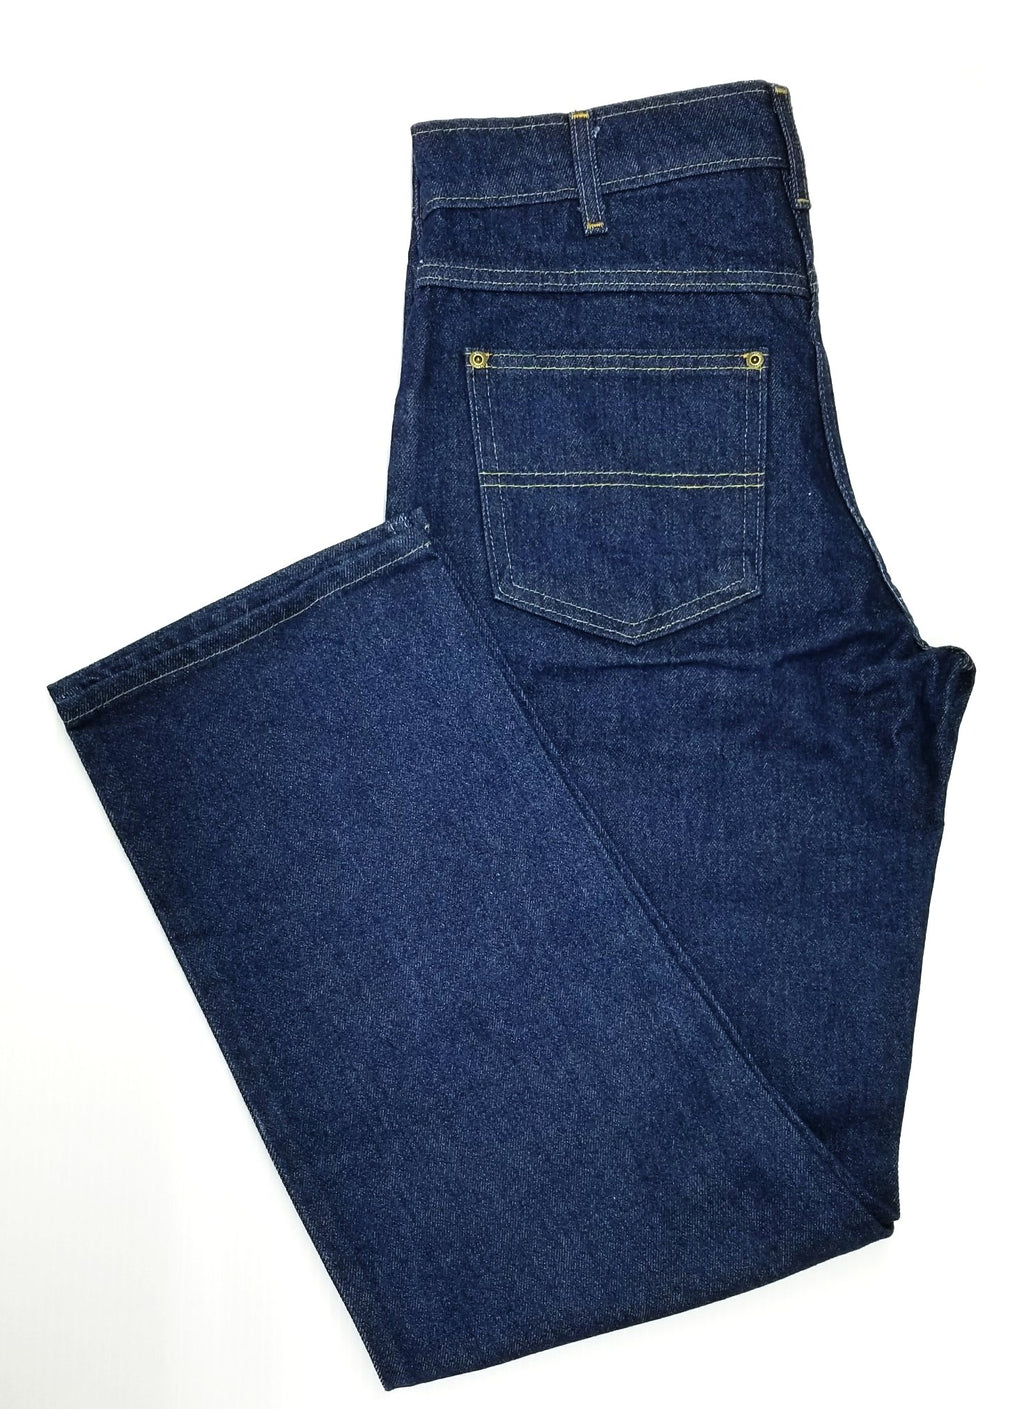 Prison Blues Denim Relaxed Jeans Made in the USA